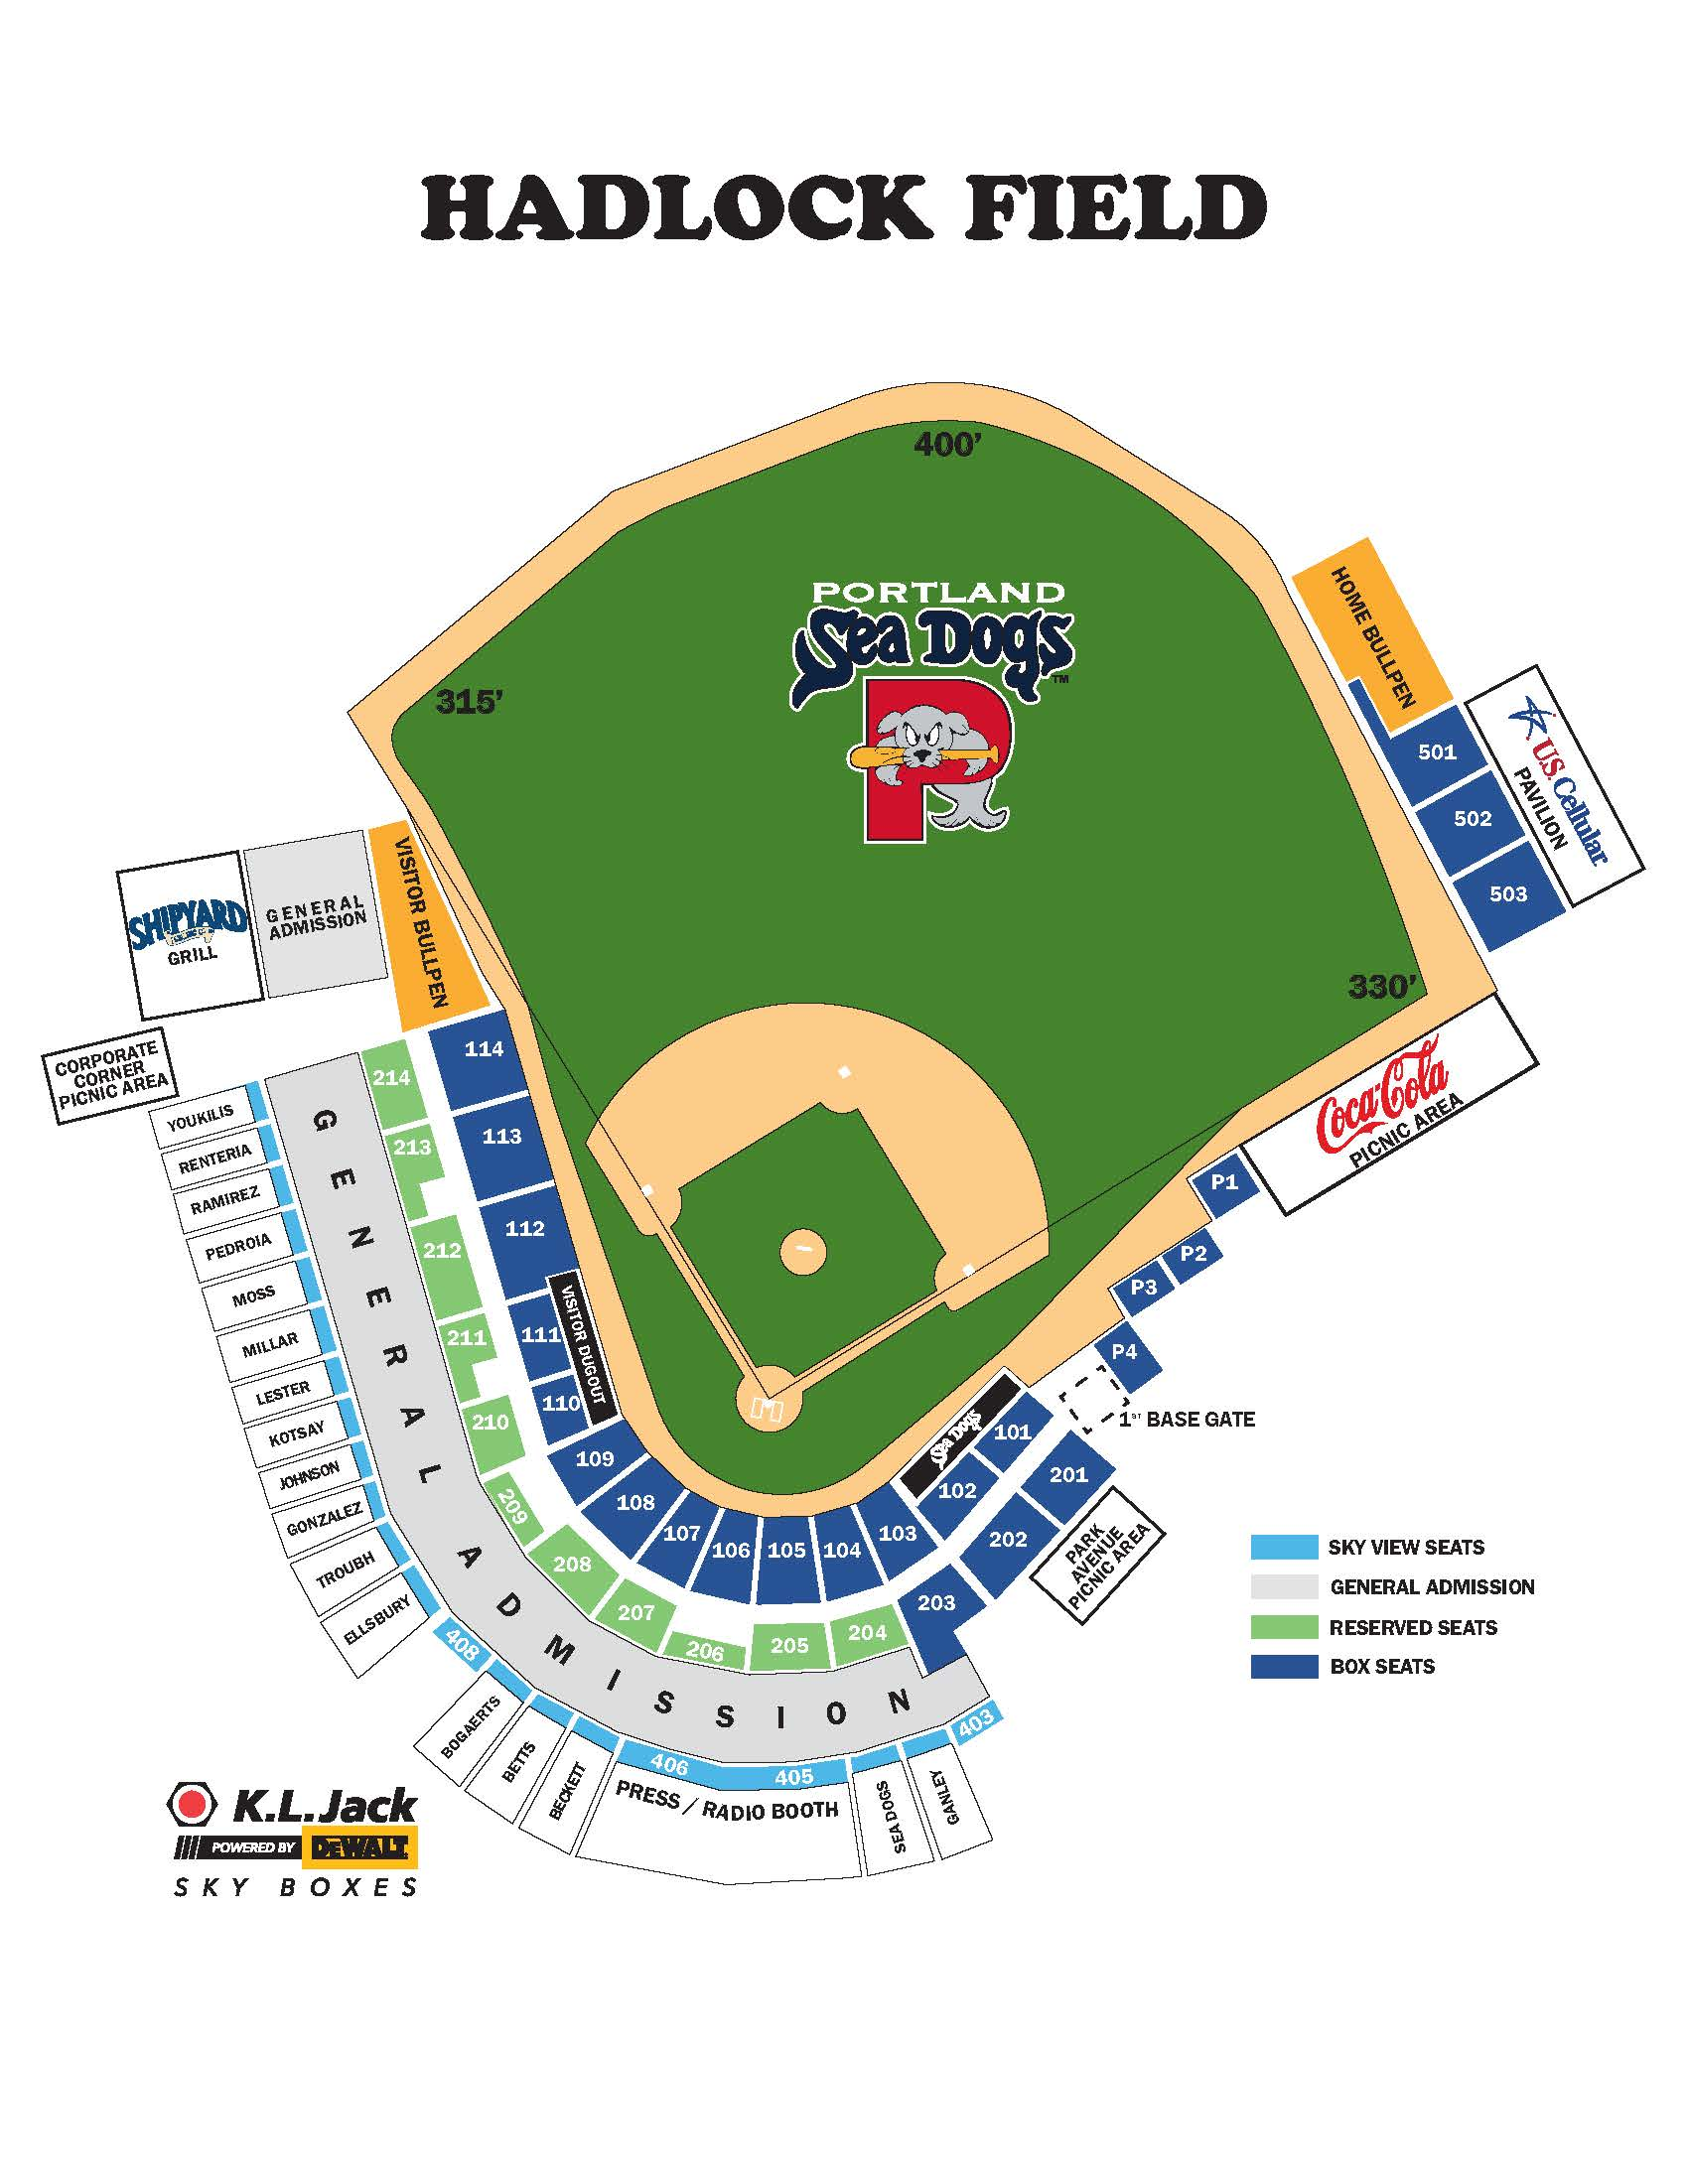 Sea Dogs Seating Chart And Ticket Information Sea Dogs - Us-cellular-seat-map